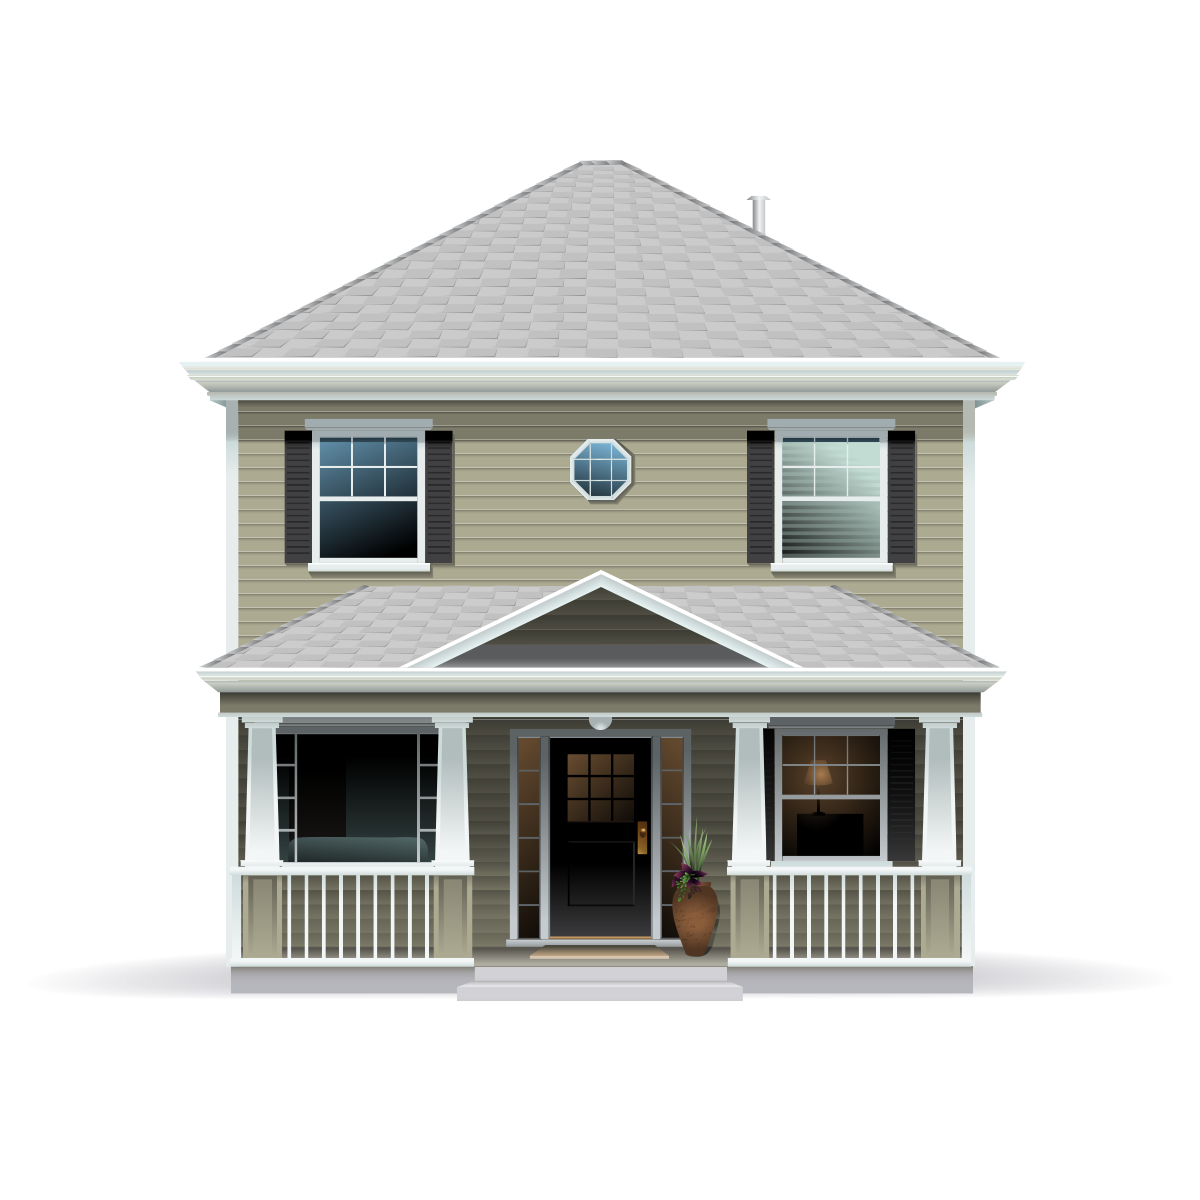 Beige two story house with grey roof and white trim illustration